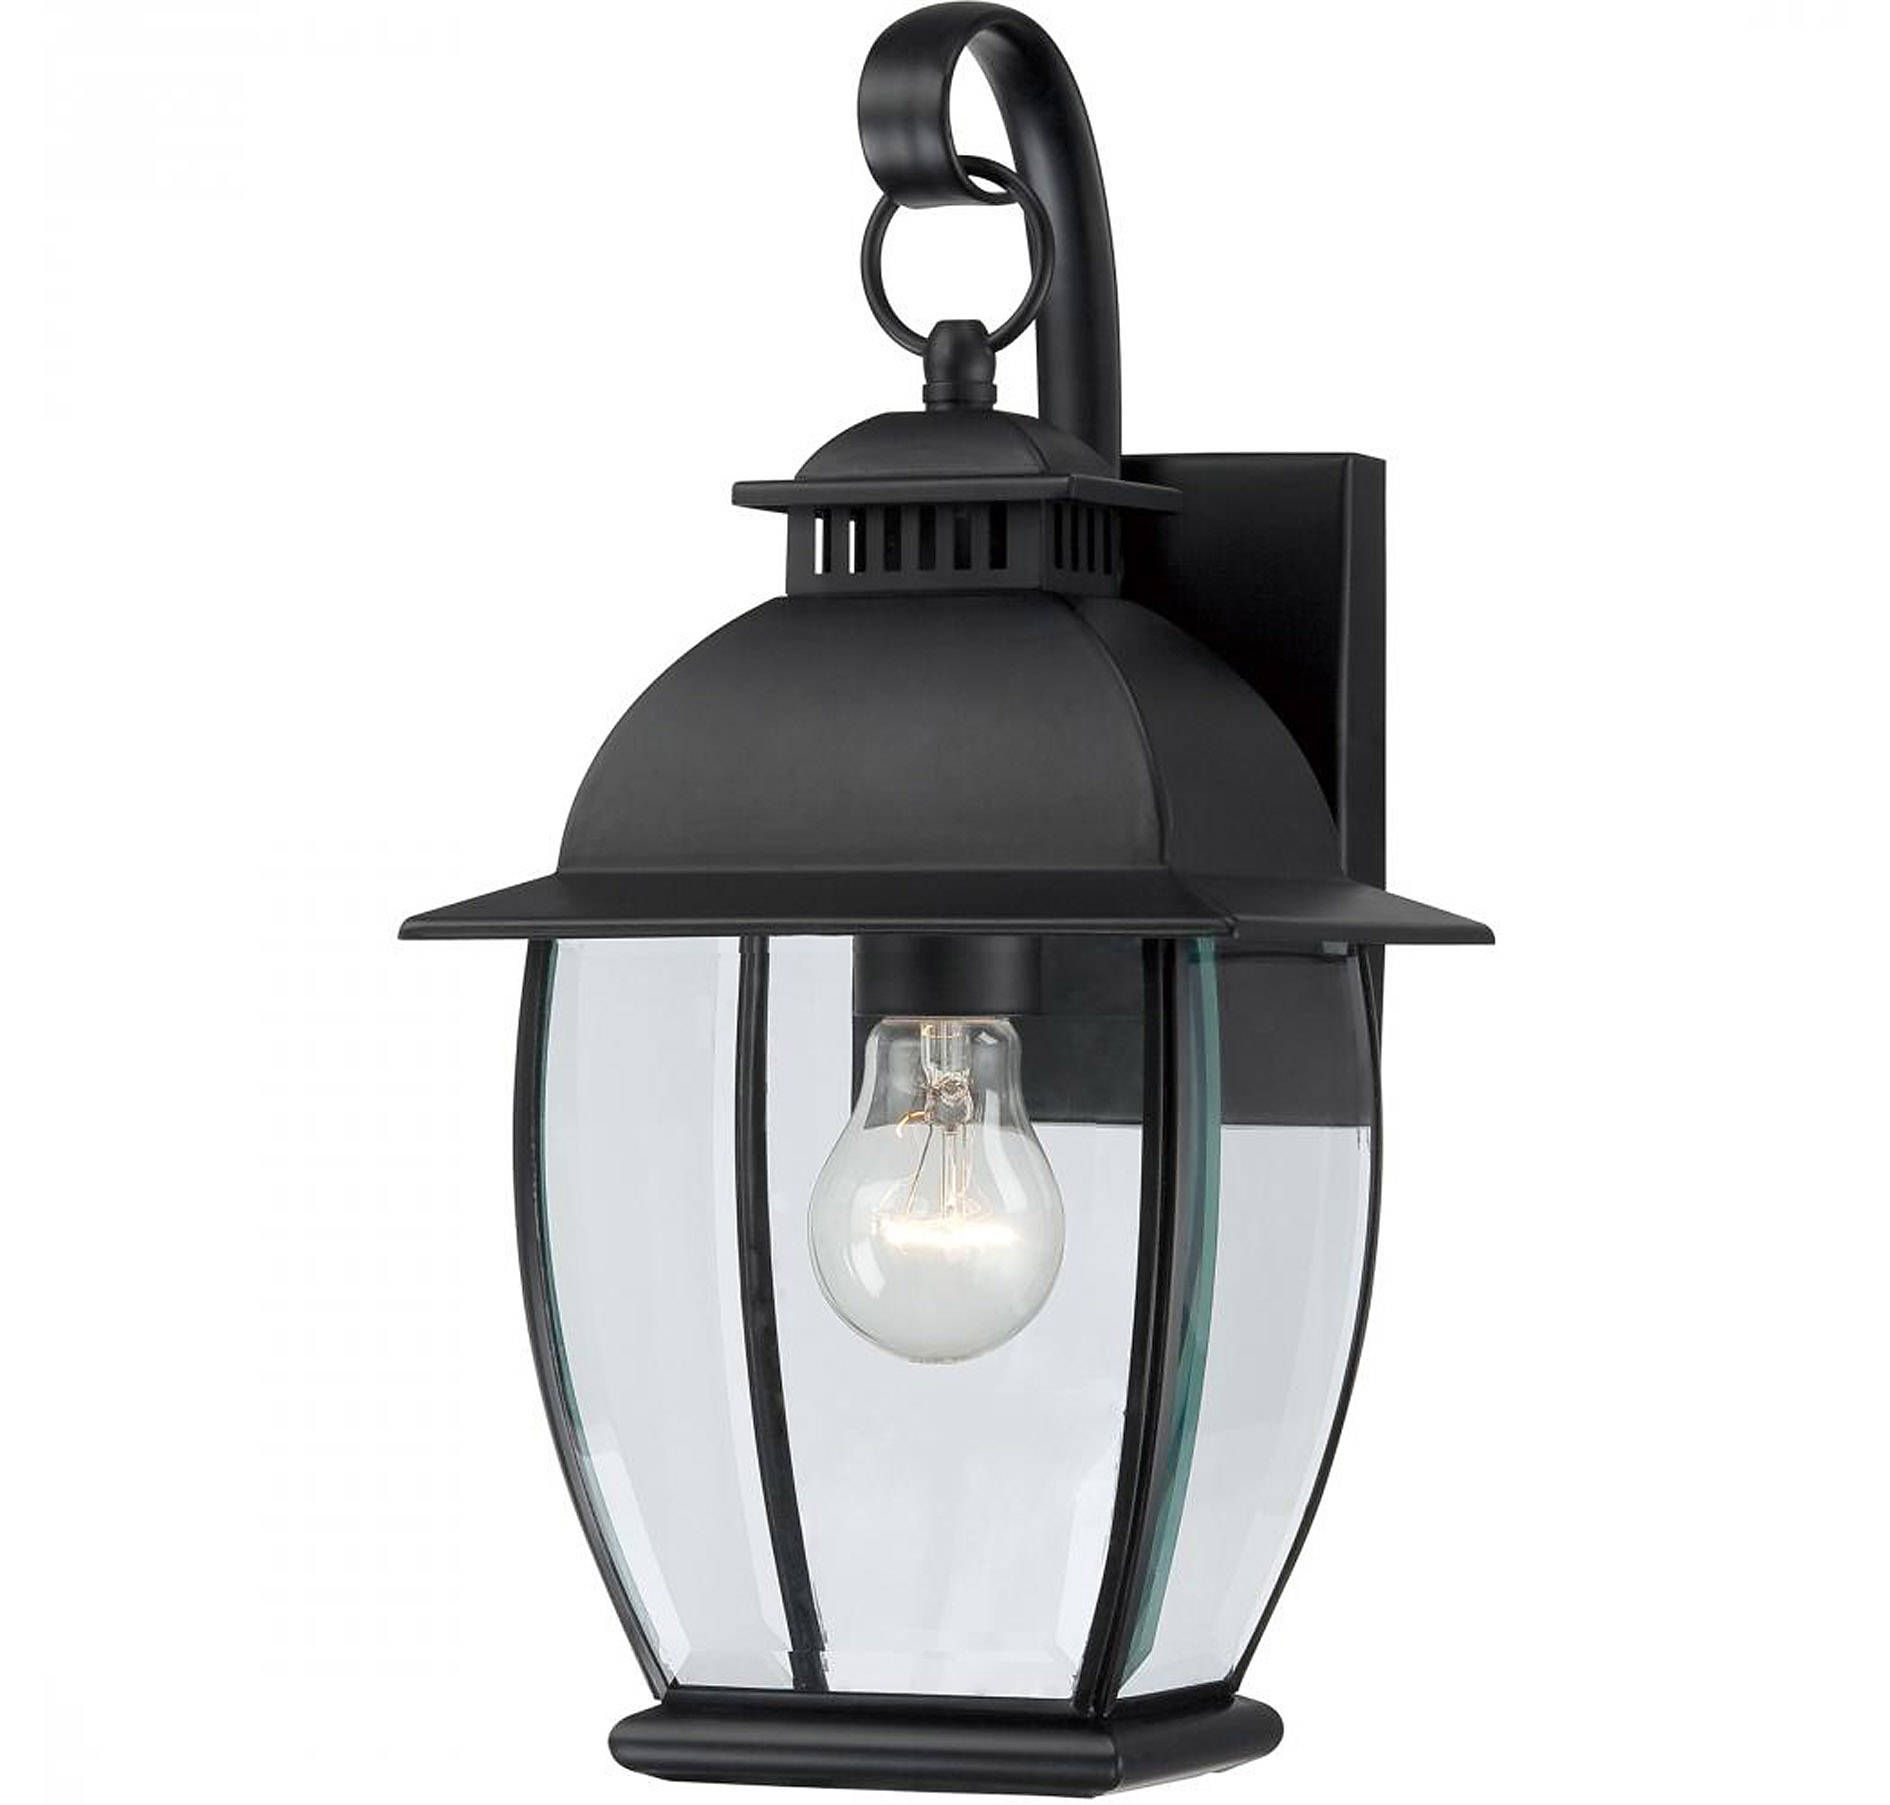 Quoizel BAN8407KFL Bain 1-Light Outdoor Lantern in Mystic Black in Outdoor Lights, Outdoor Wall Lights: ProgressiveLighting.com